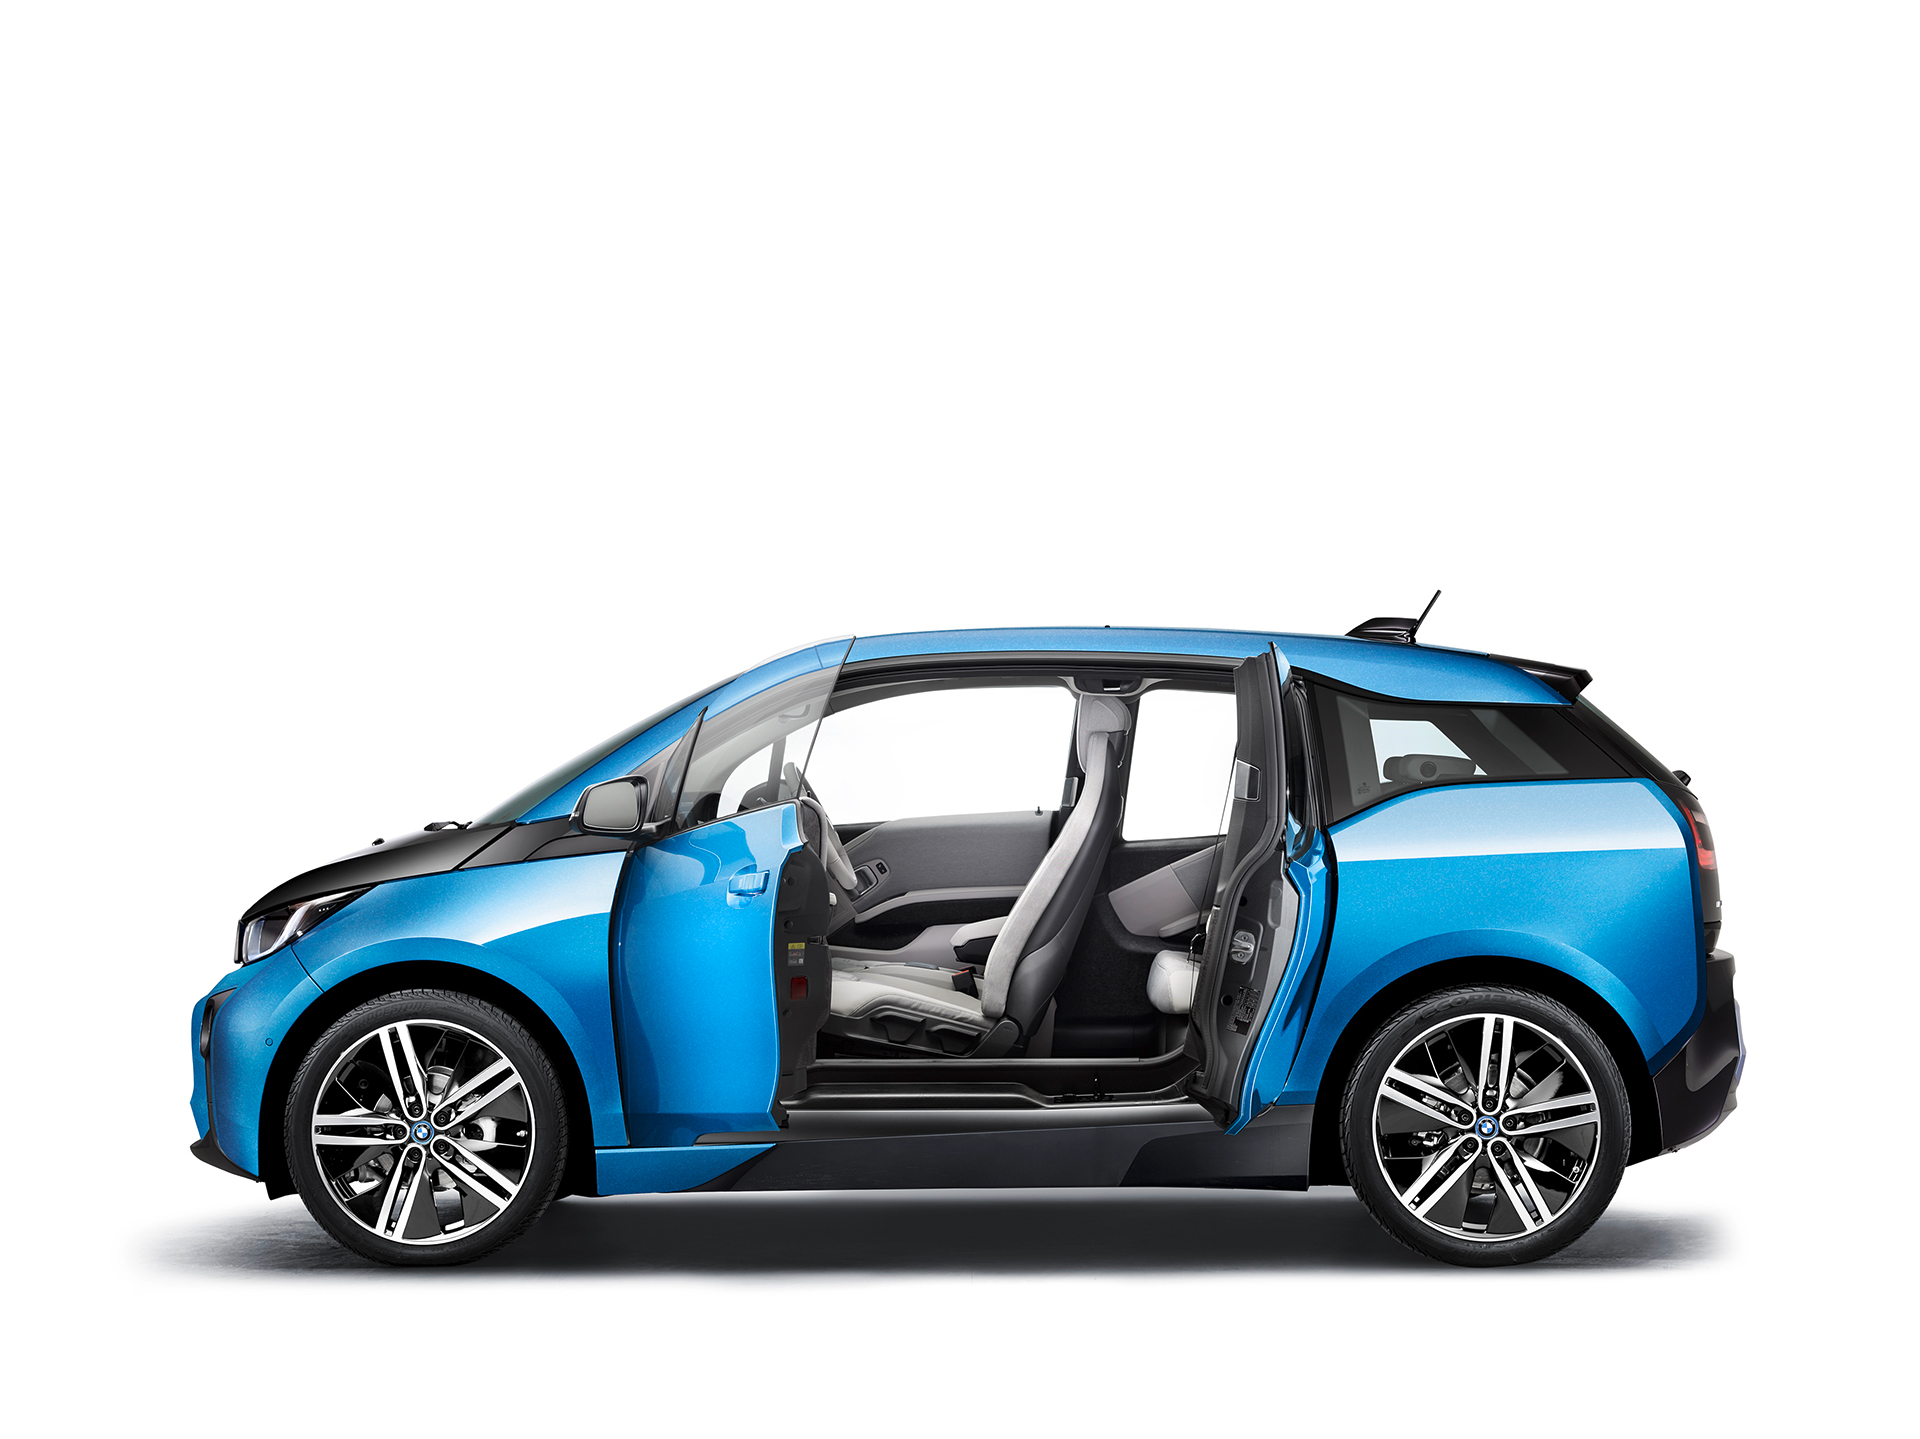 BMW i3 94ah - 2017 - side-face / profil - open doors / portes ouvertes